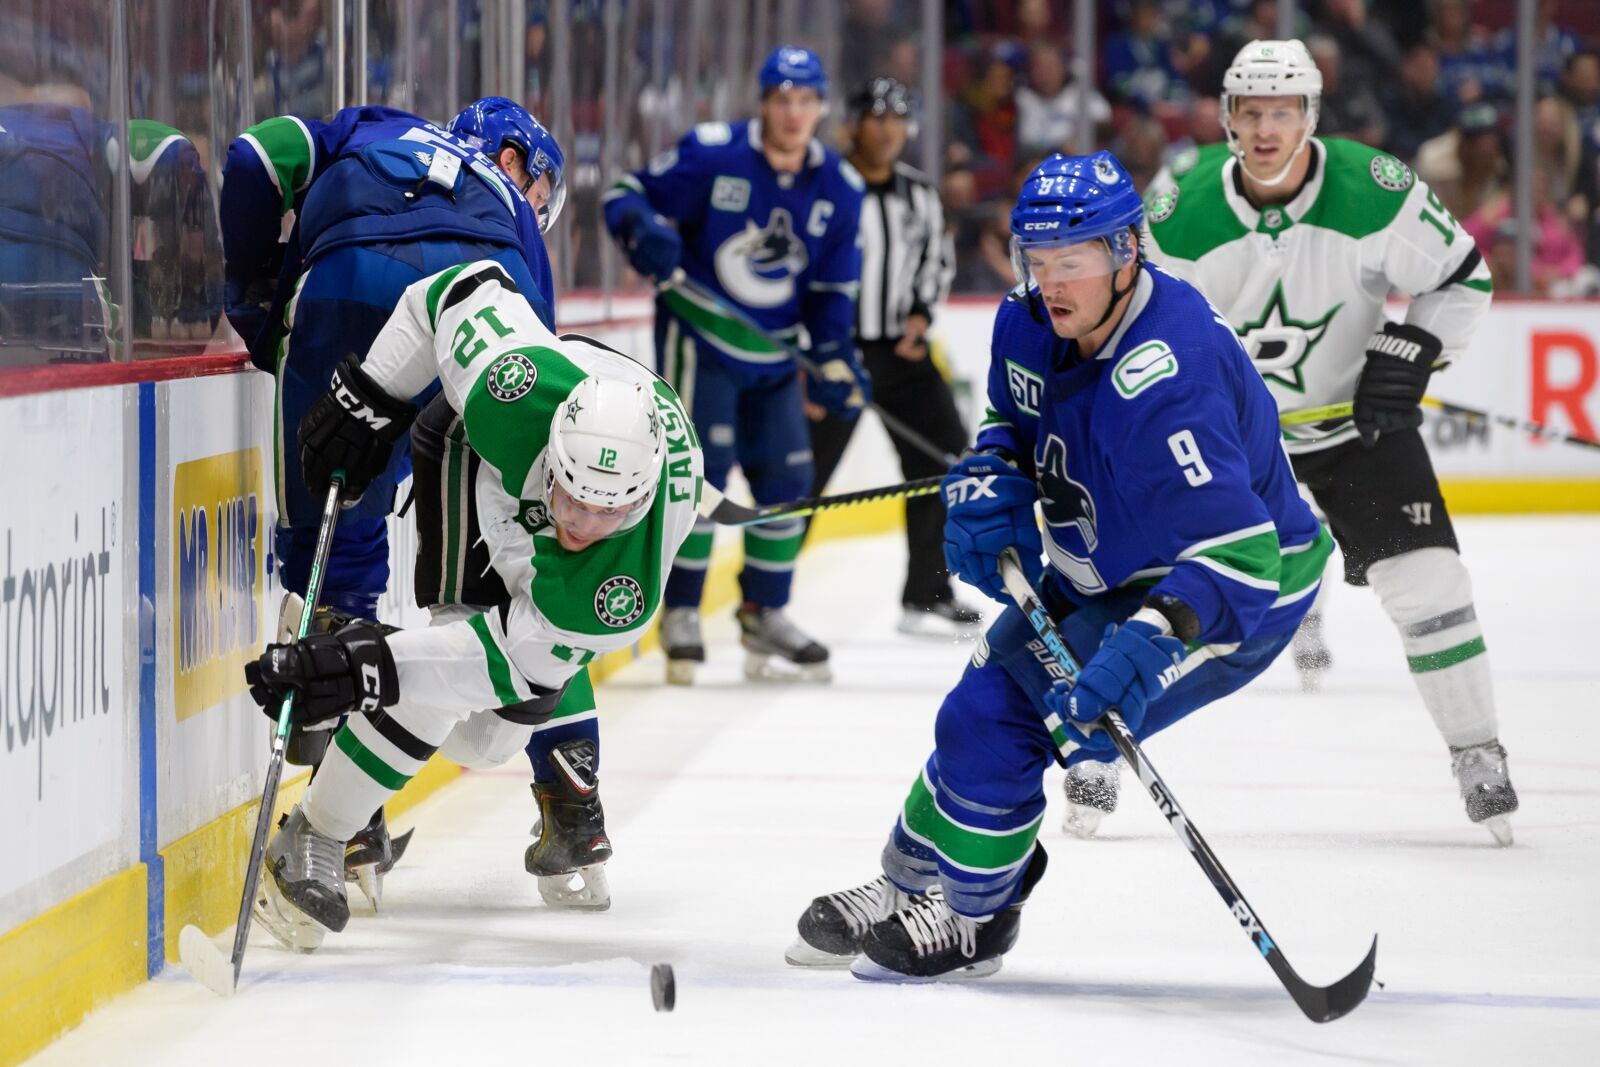 Canucks: The problems from last year are on display again